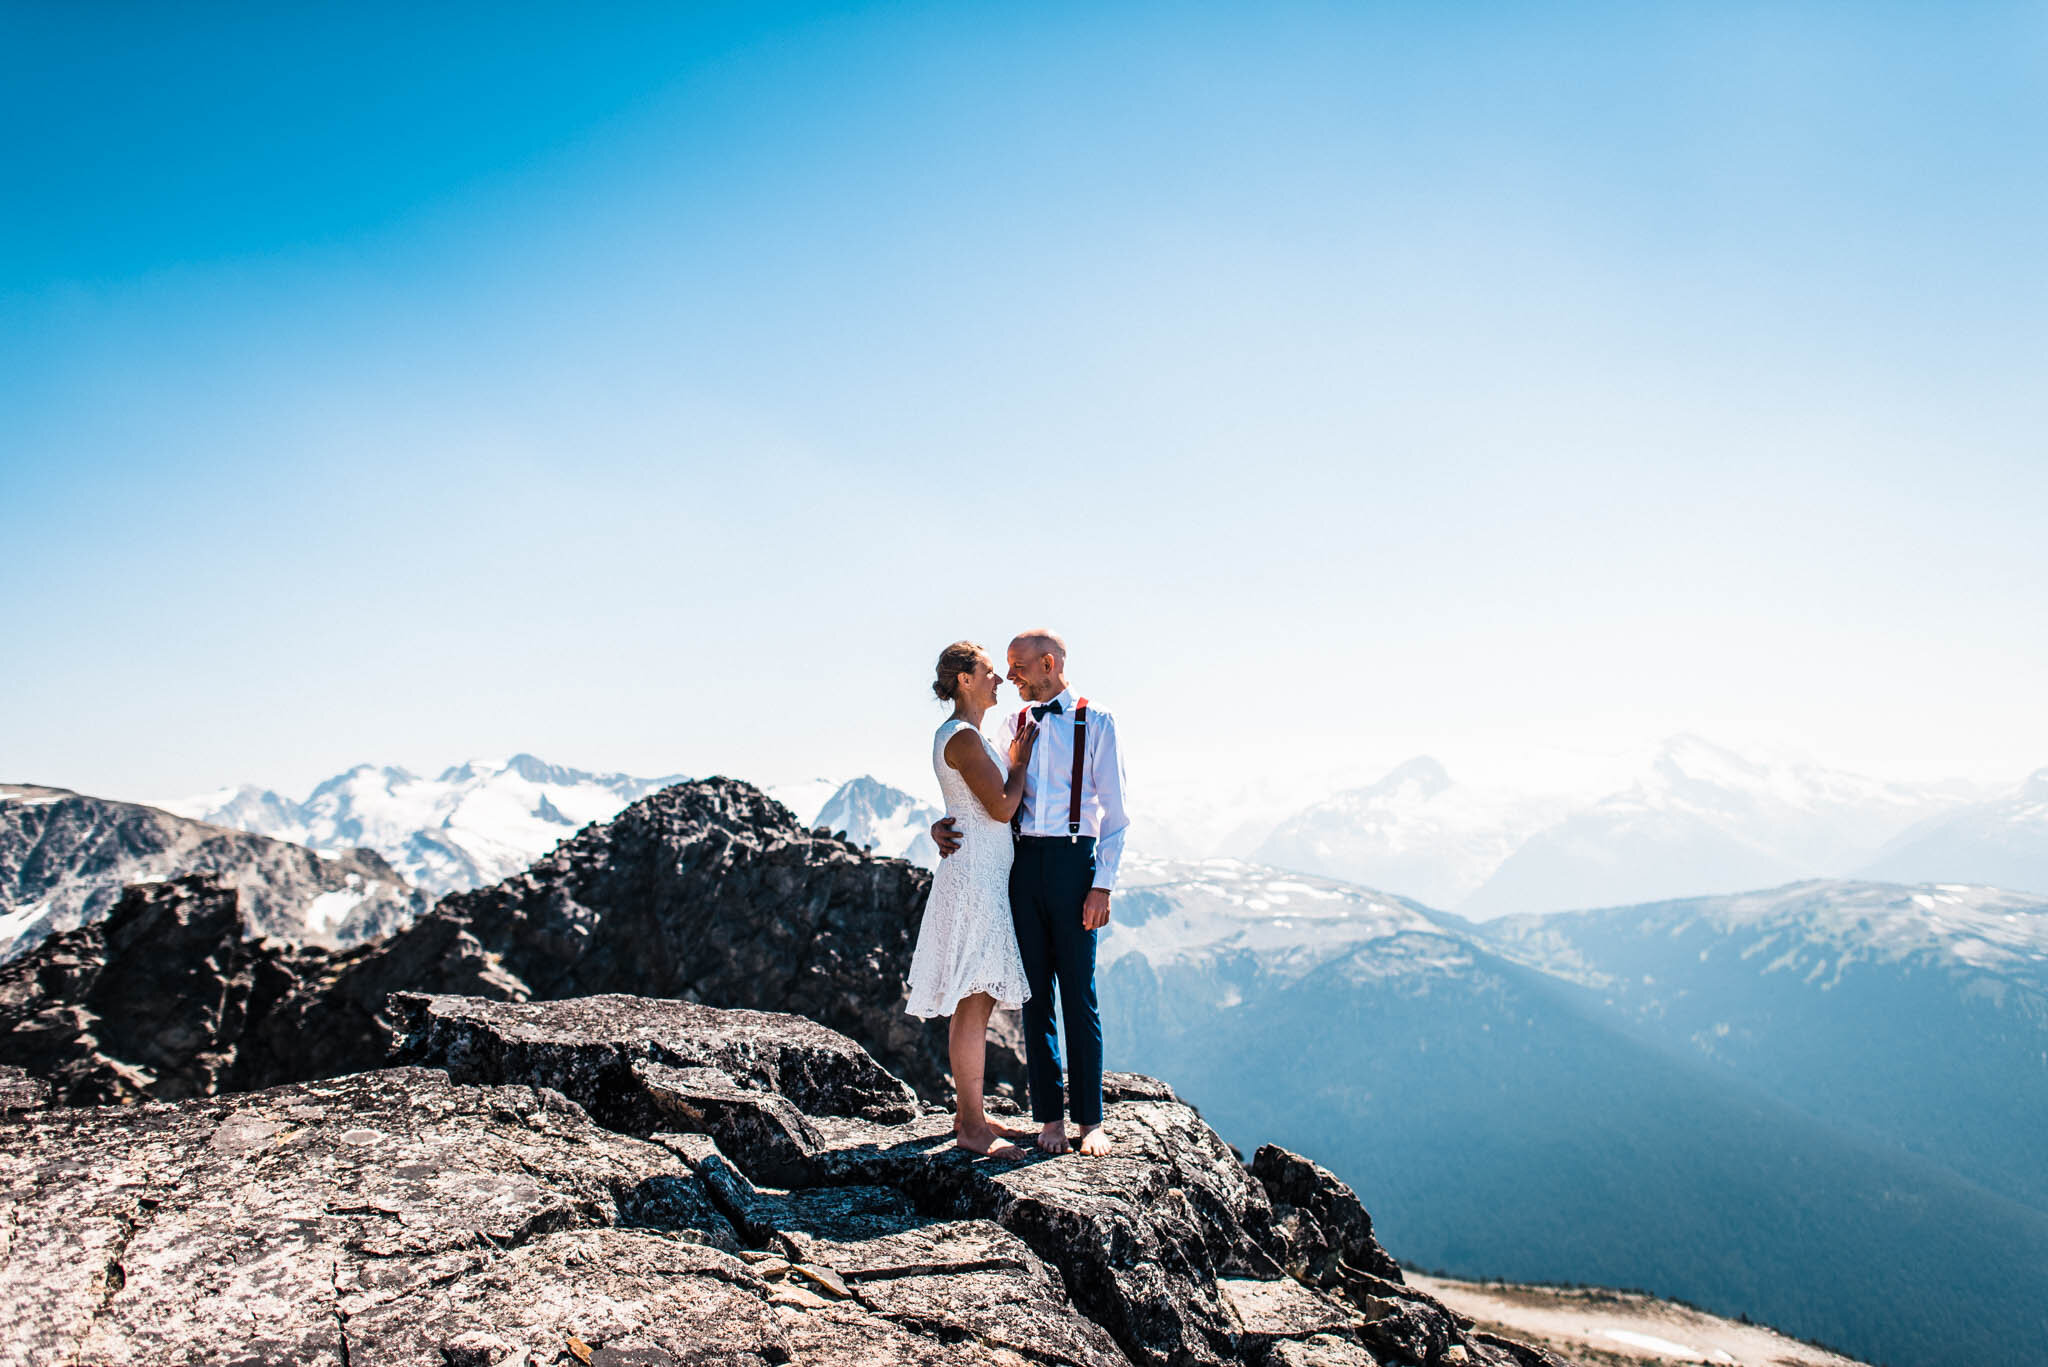 Sirja_Chris_Elopement_Teasers_The_Foxes_Photography_17.jpg